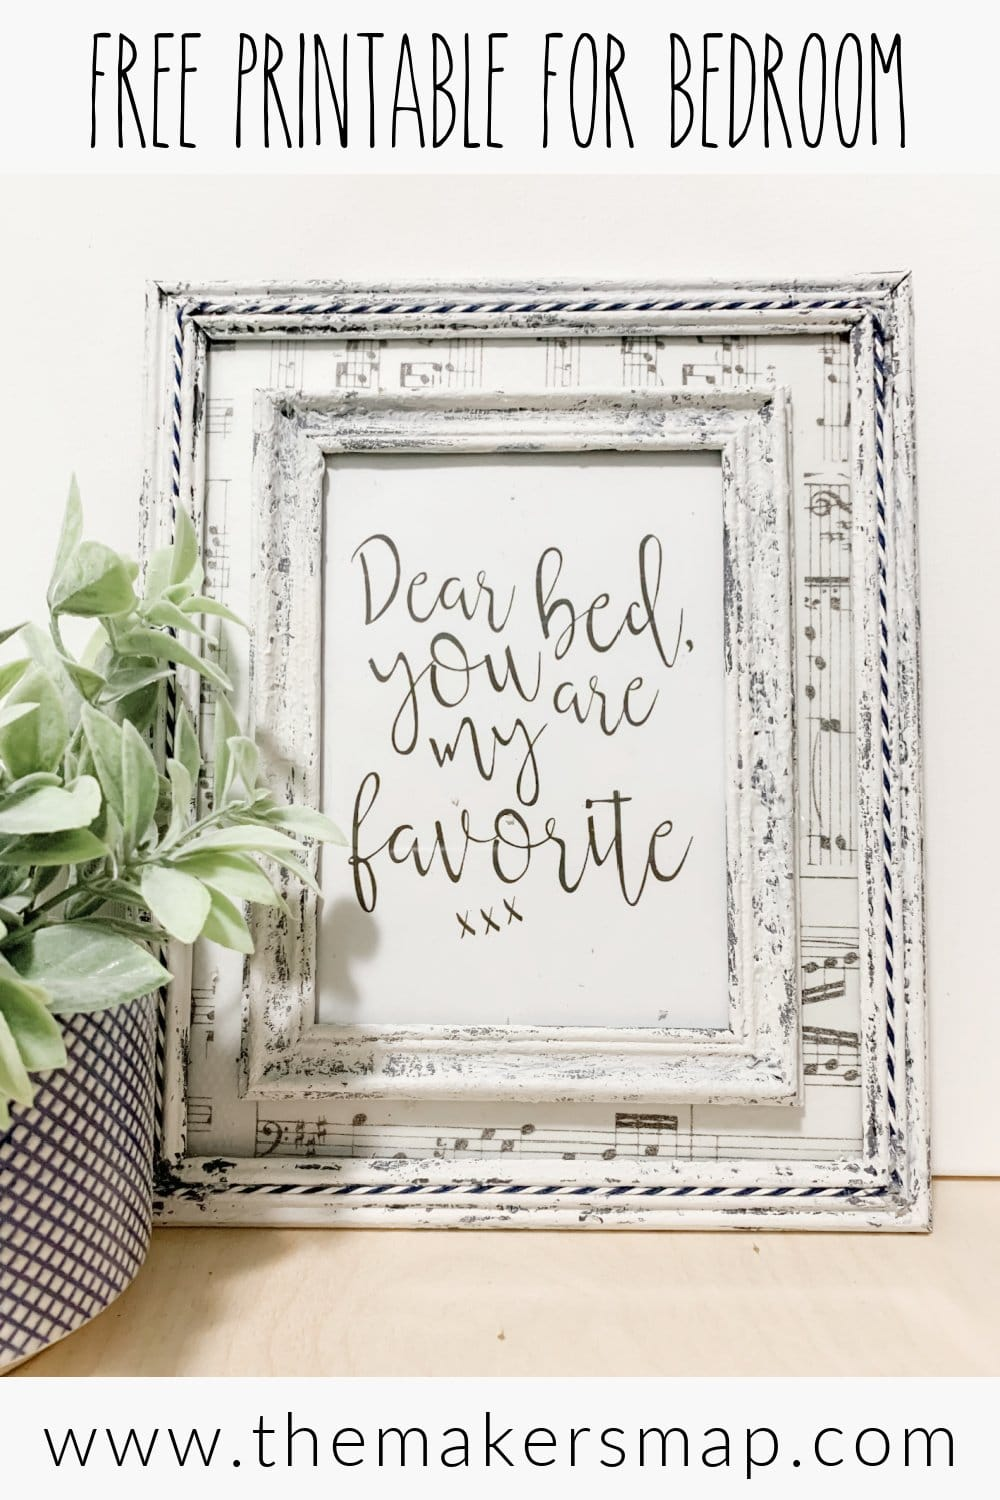 free printable to craft with or make home decor affordable bedroom decor prints